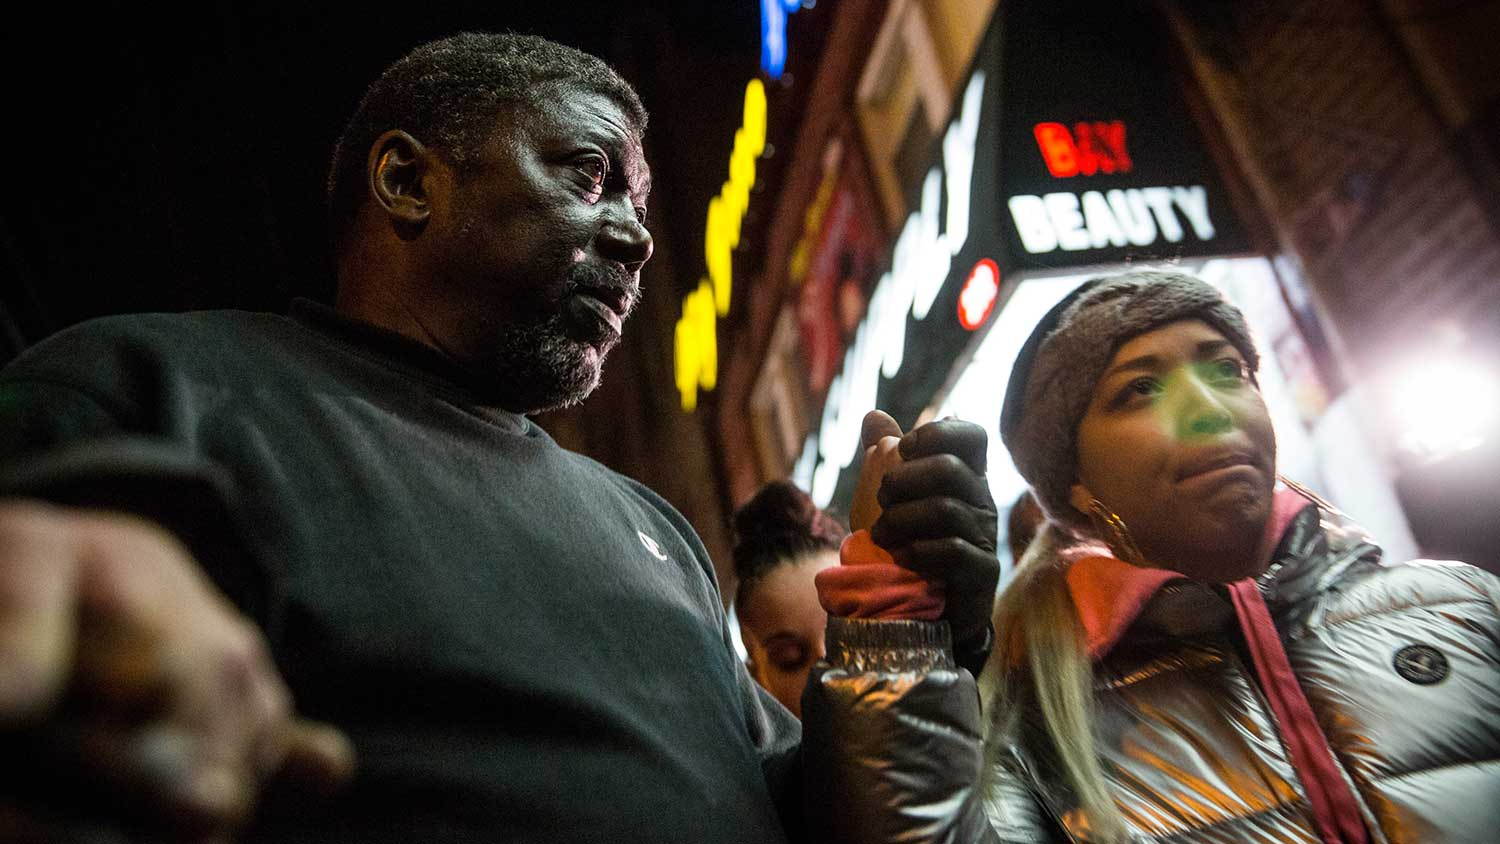 Benjamin Carr, stepfather of Eric Garner, prays on Dec. 3, 2014, outside the Staten Island beauty salon where his stepson was killed.